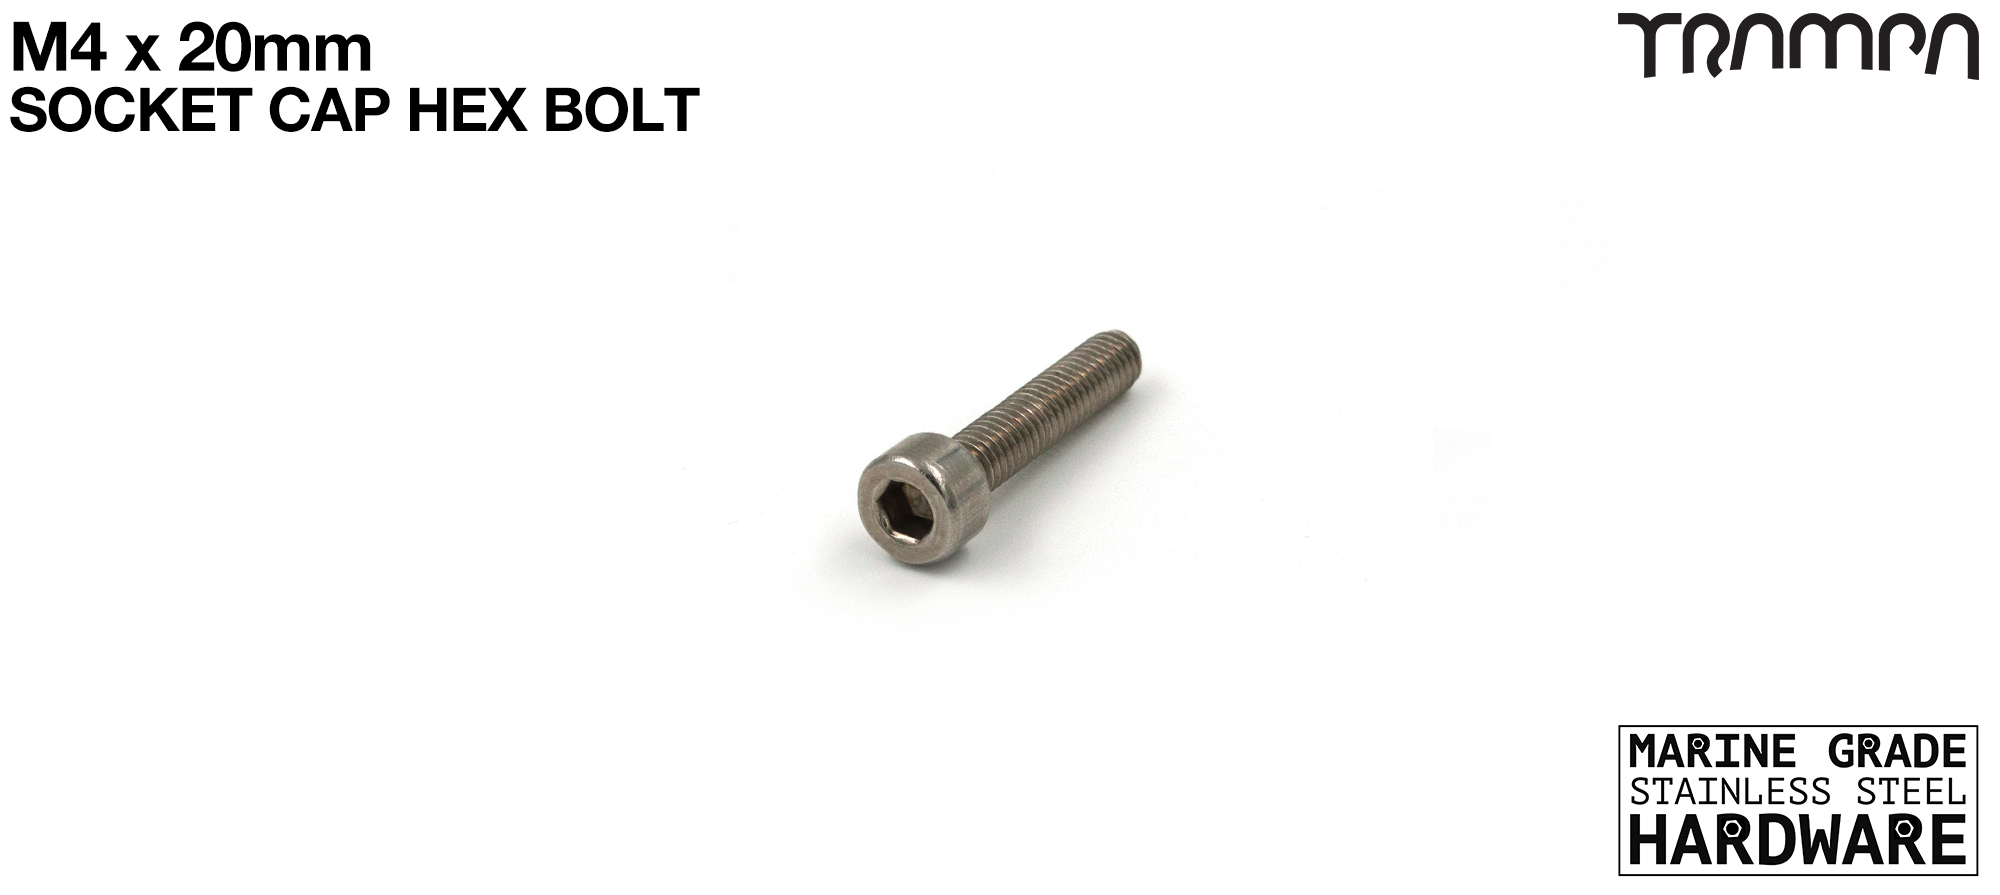 M4 x 20mm Socket Capped Head Bolt ISO 4762 Marine Grade Stainless Steel